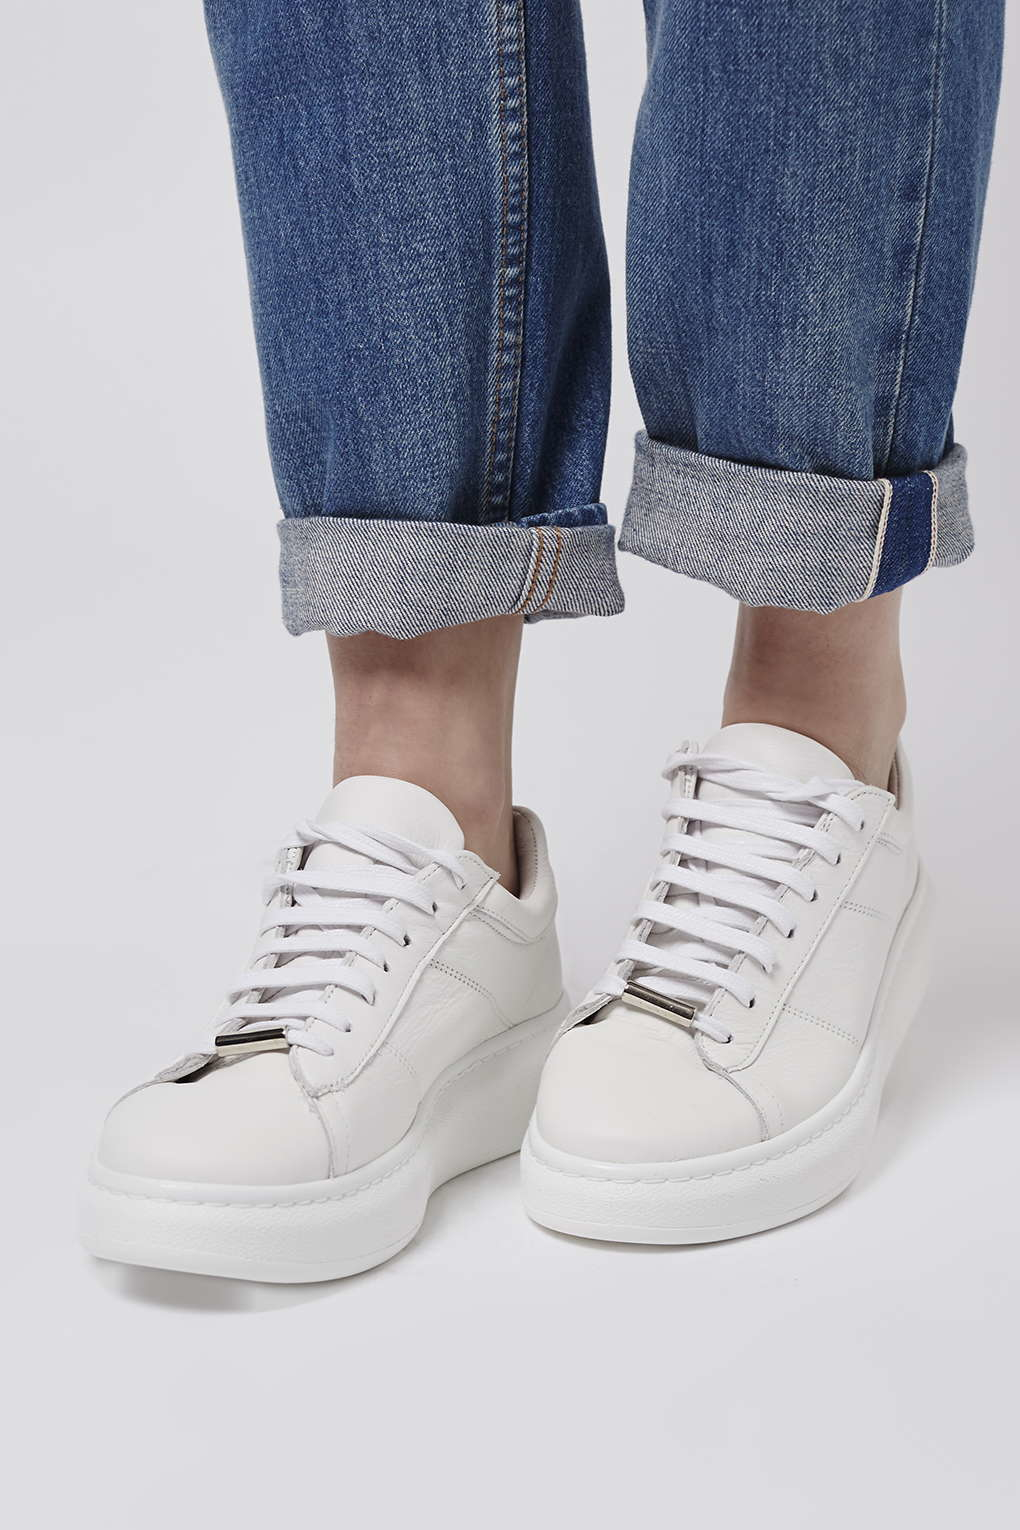 TOPSHOP Toulouse Lace-up Trainer in